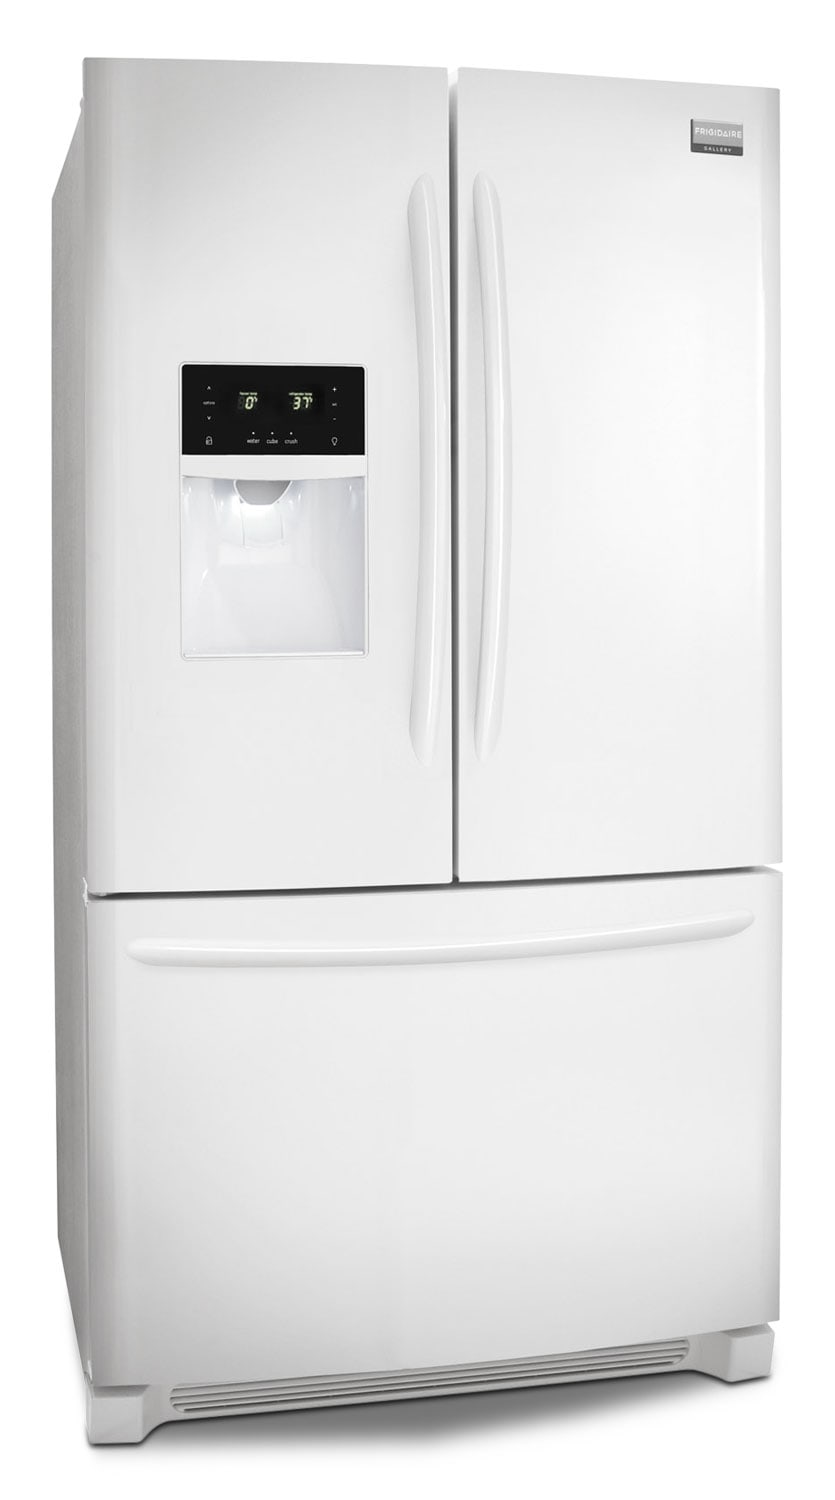 Frigidaire Gallery Pearl White French Door Refrigerator (27.7 Cu. Ft.)    FGHB2866PP